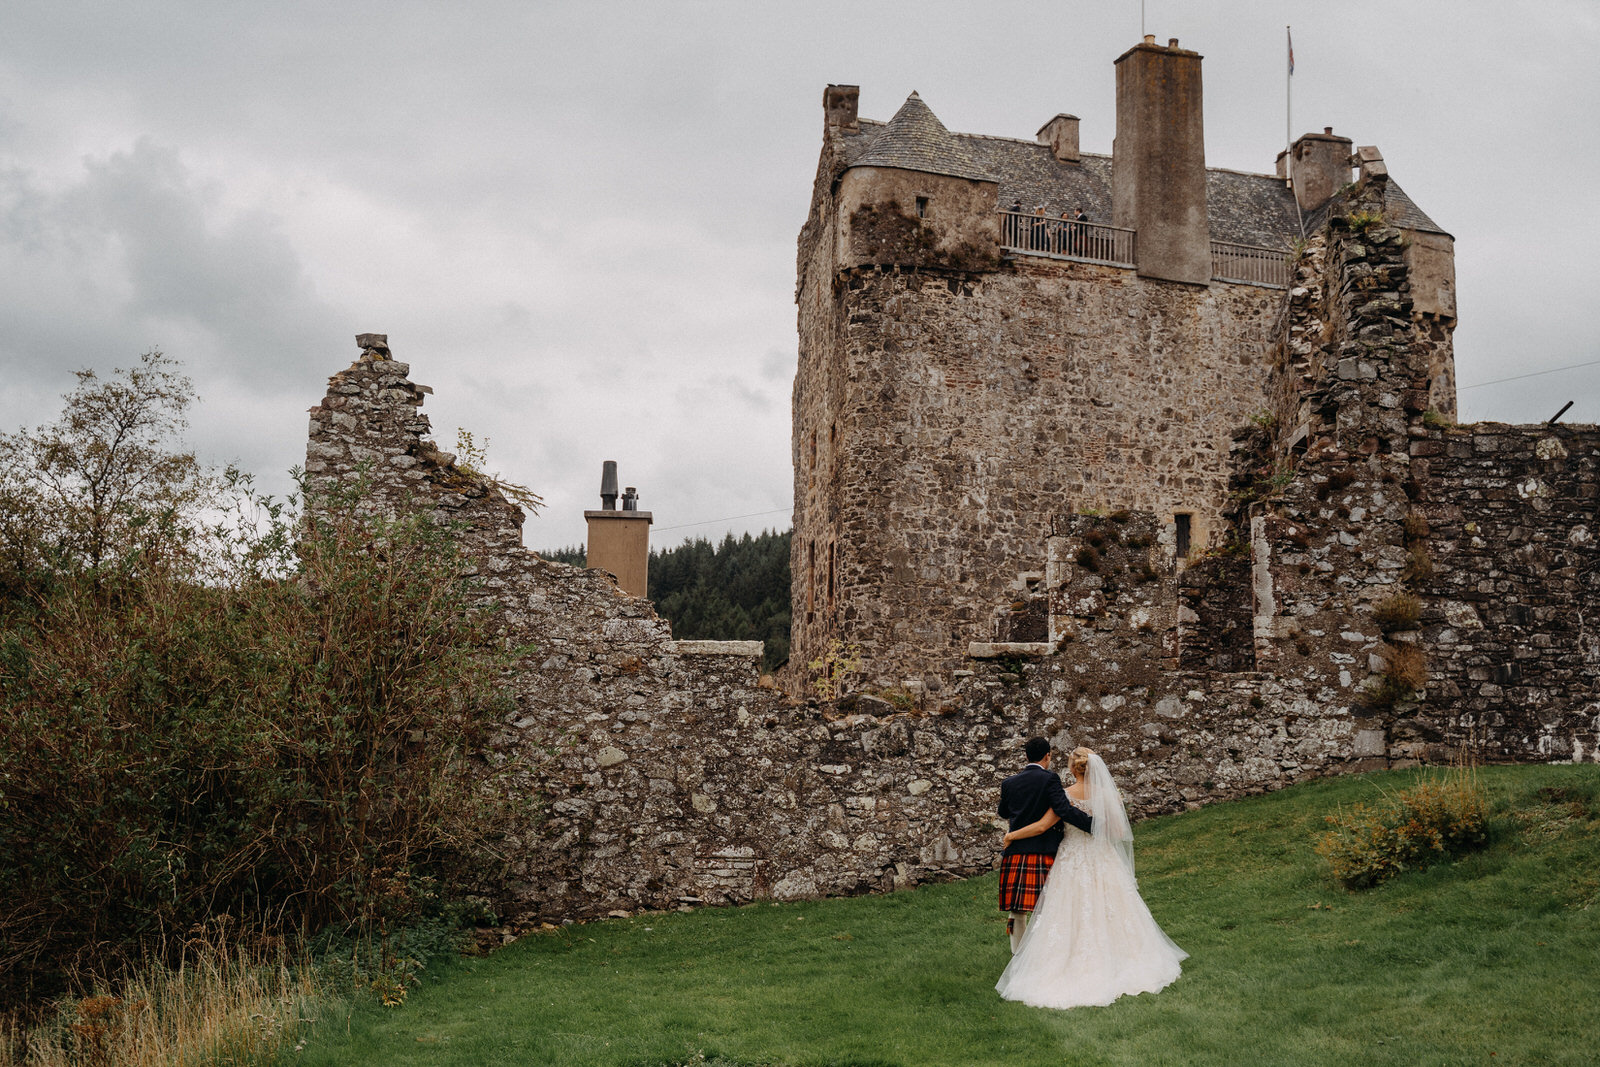 Neidpath Castle - This rustic castle is located on the banks of the River Tweed just outside Peebles. It offers couples an idyllic setting for their special day and has so many unique little features that really make this a one of a kind wedding venue! Here's some photos from Catriona and Ramsay's awesome wedding, from 2018